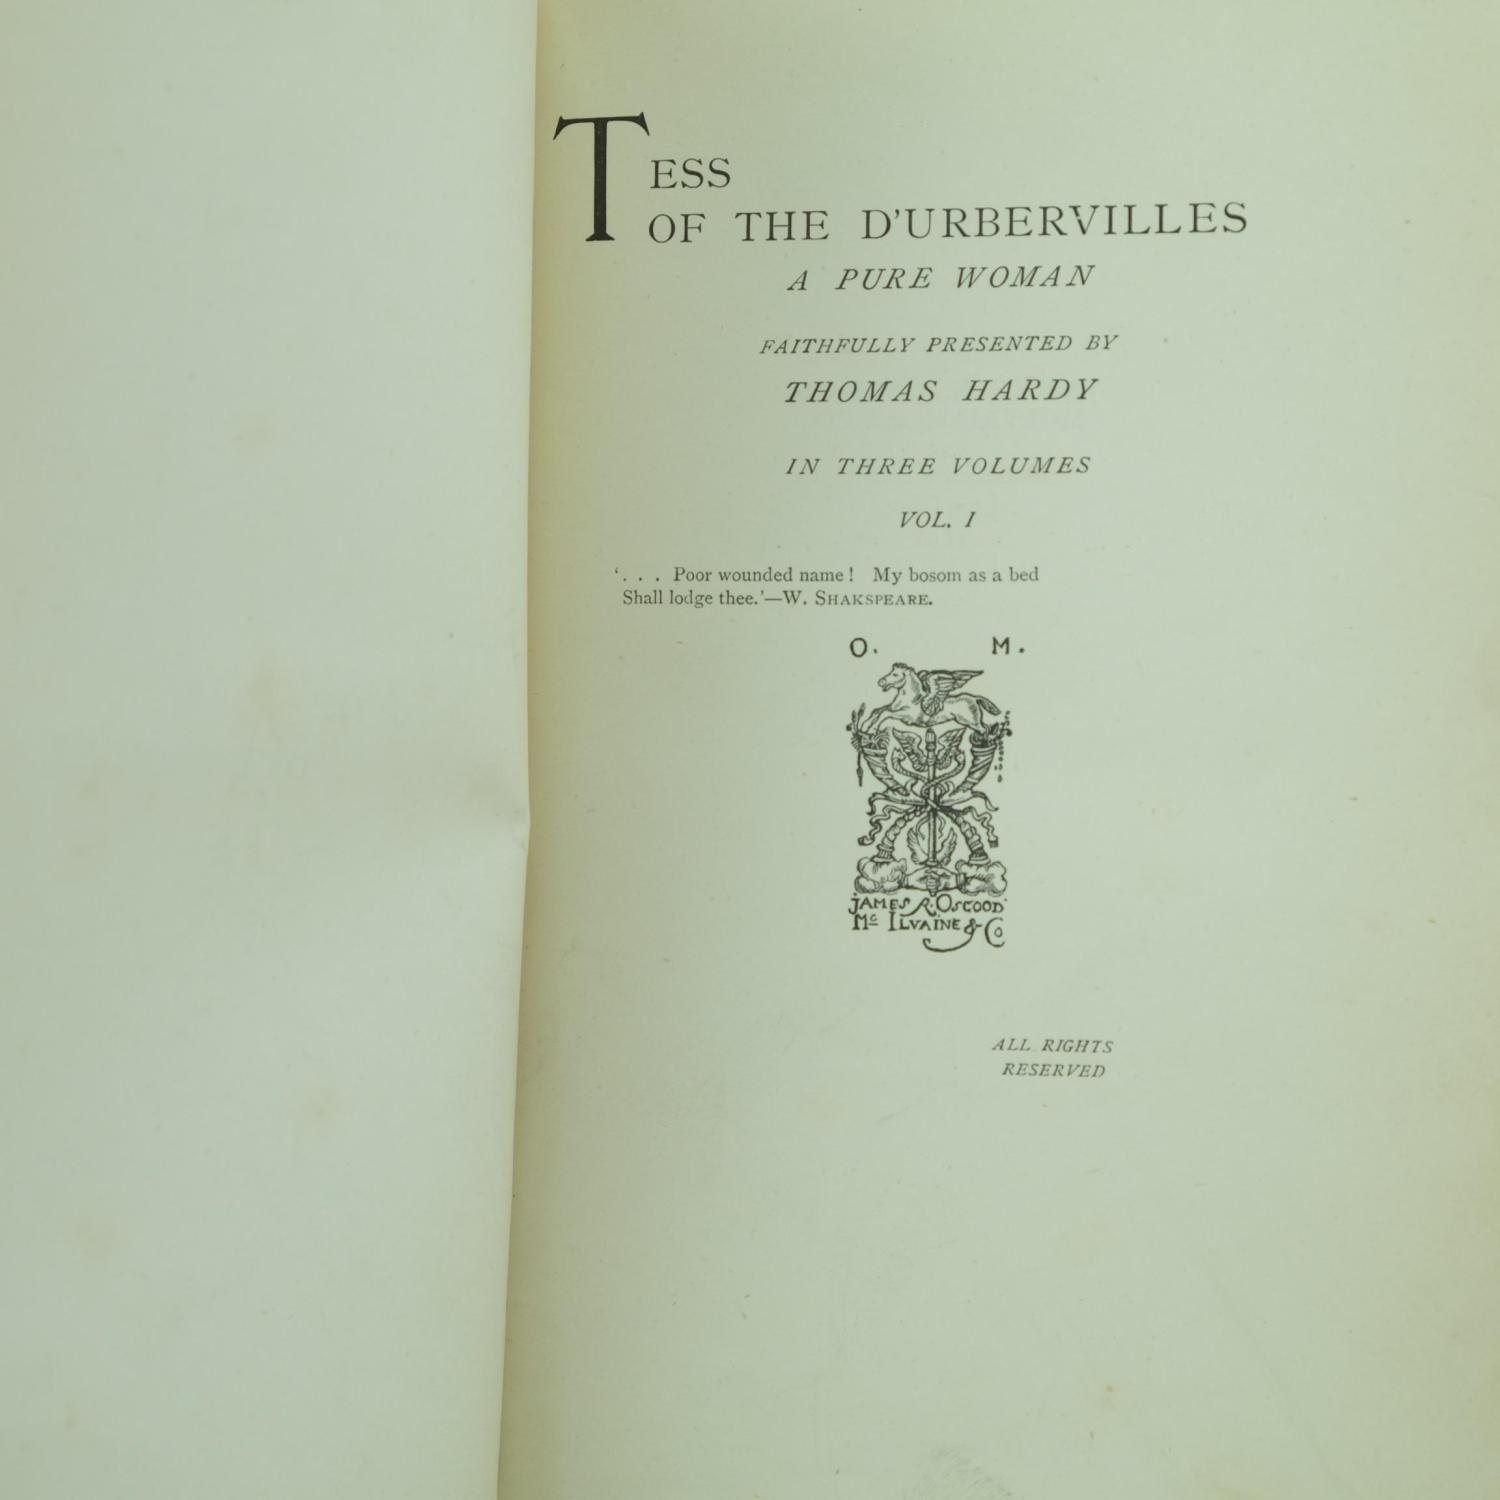 is tess a pure woman Tess of the d'urbervilles has 207,133 ratings and 7,260 reviews  a pure woman faithfully presented,  what could a woman of tess's time and situation hope for.